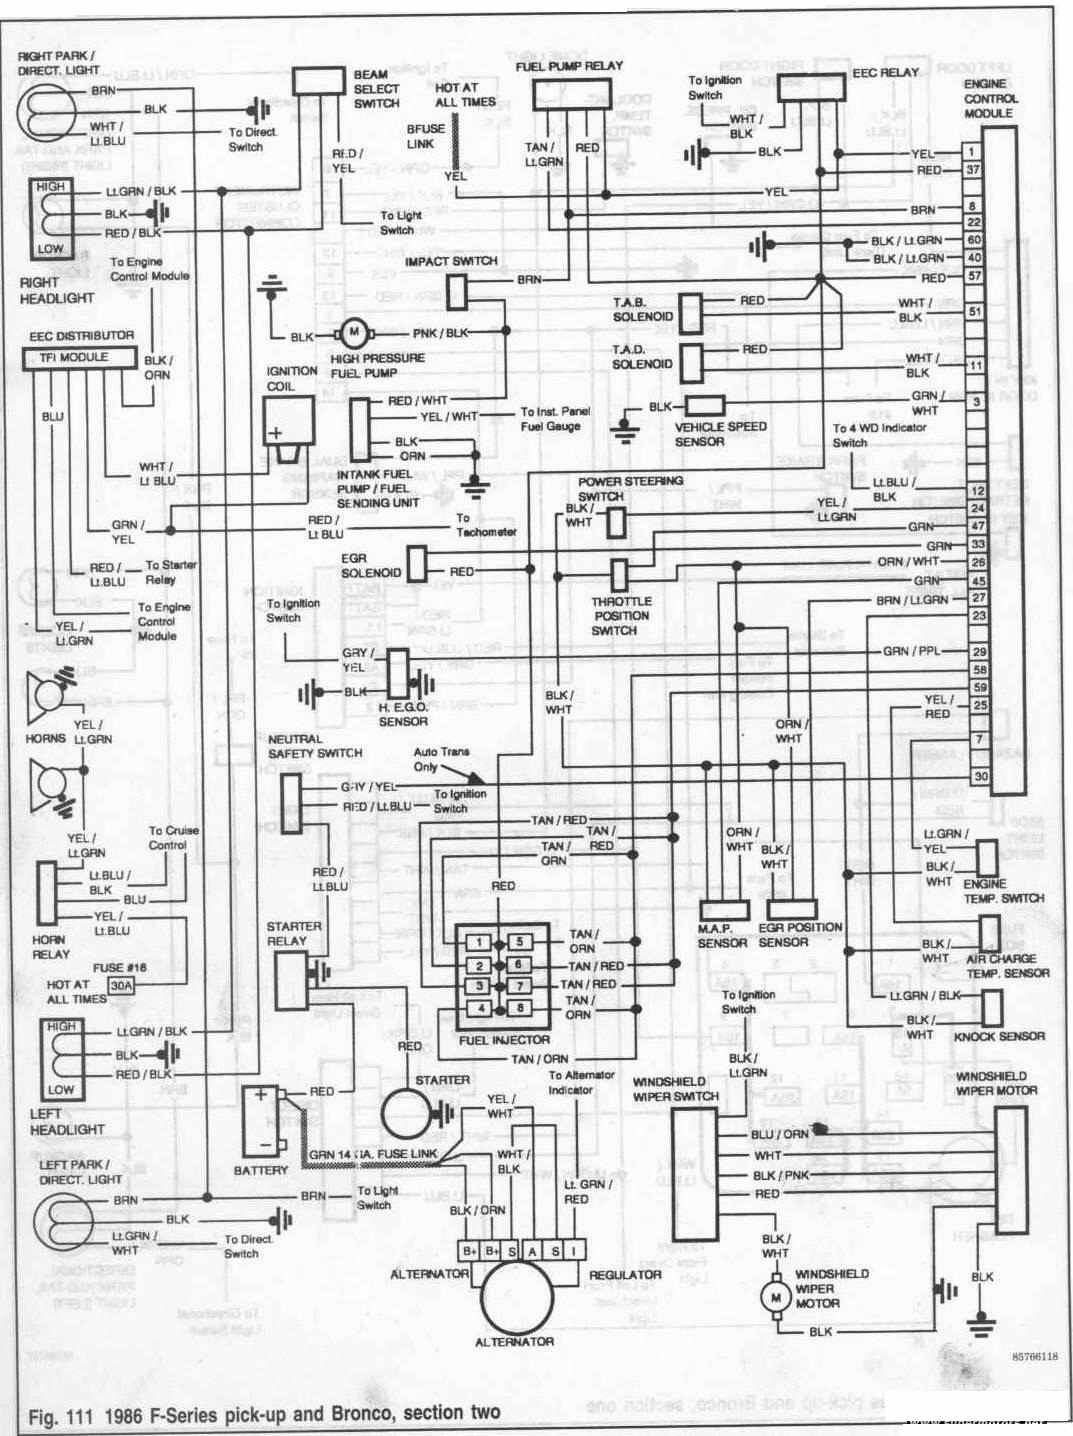 81 Ford Alternator Wiring Schematic Library 4 Wire Toyota Pickup Bronco And F Series 1986 Engine Control Module Diagram All About